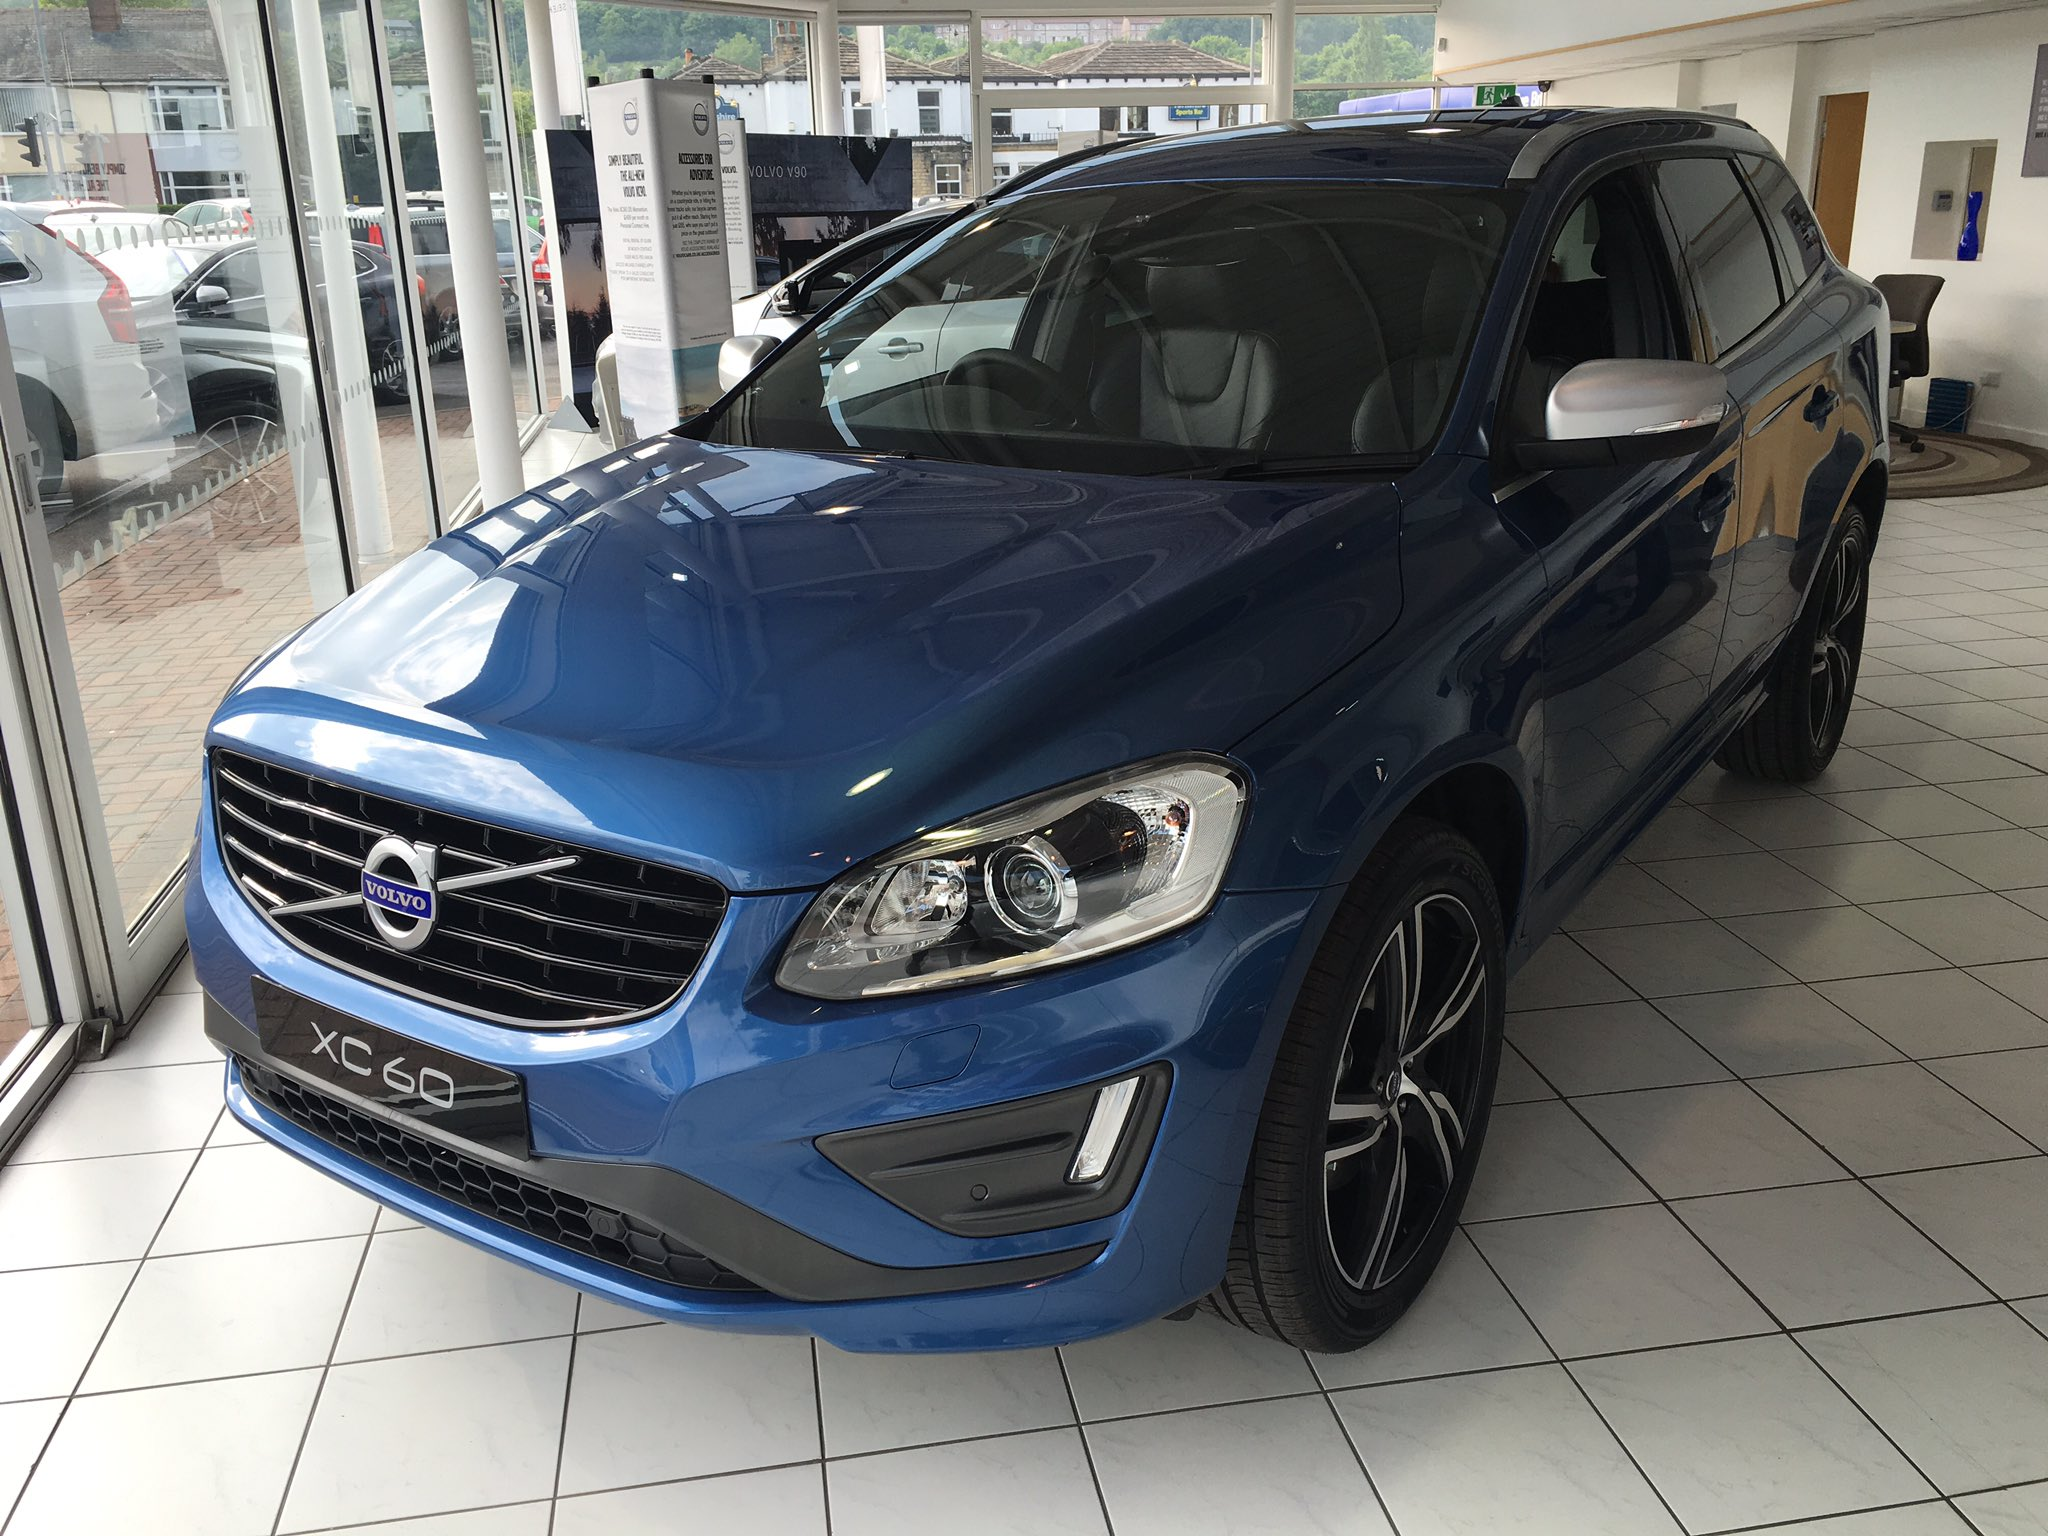 clive brook volvo on twitter bursting blue 2017 volvo. Black Bedroom Furniture Sets. Home Design Ideas